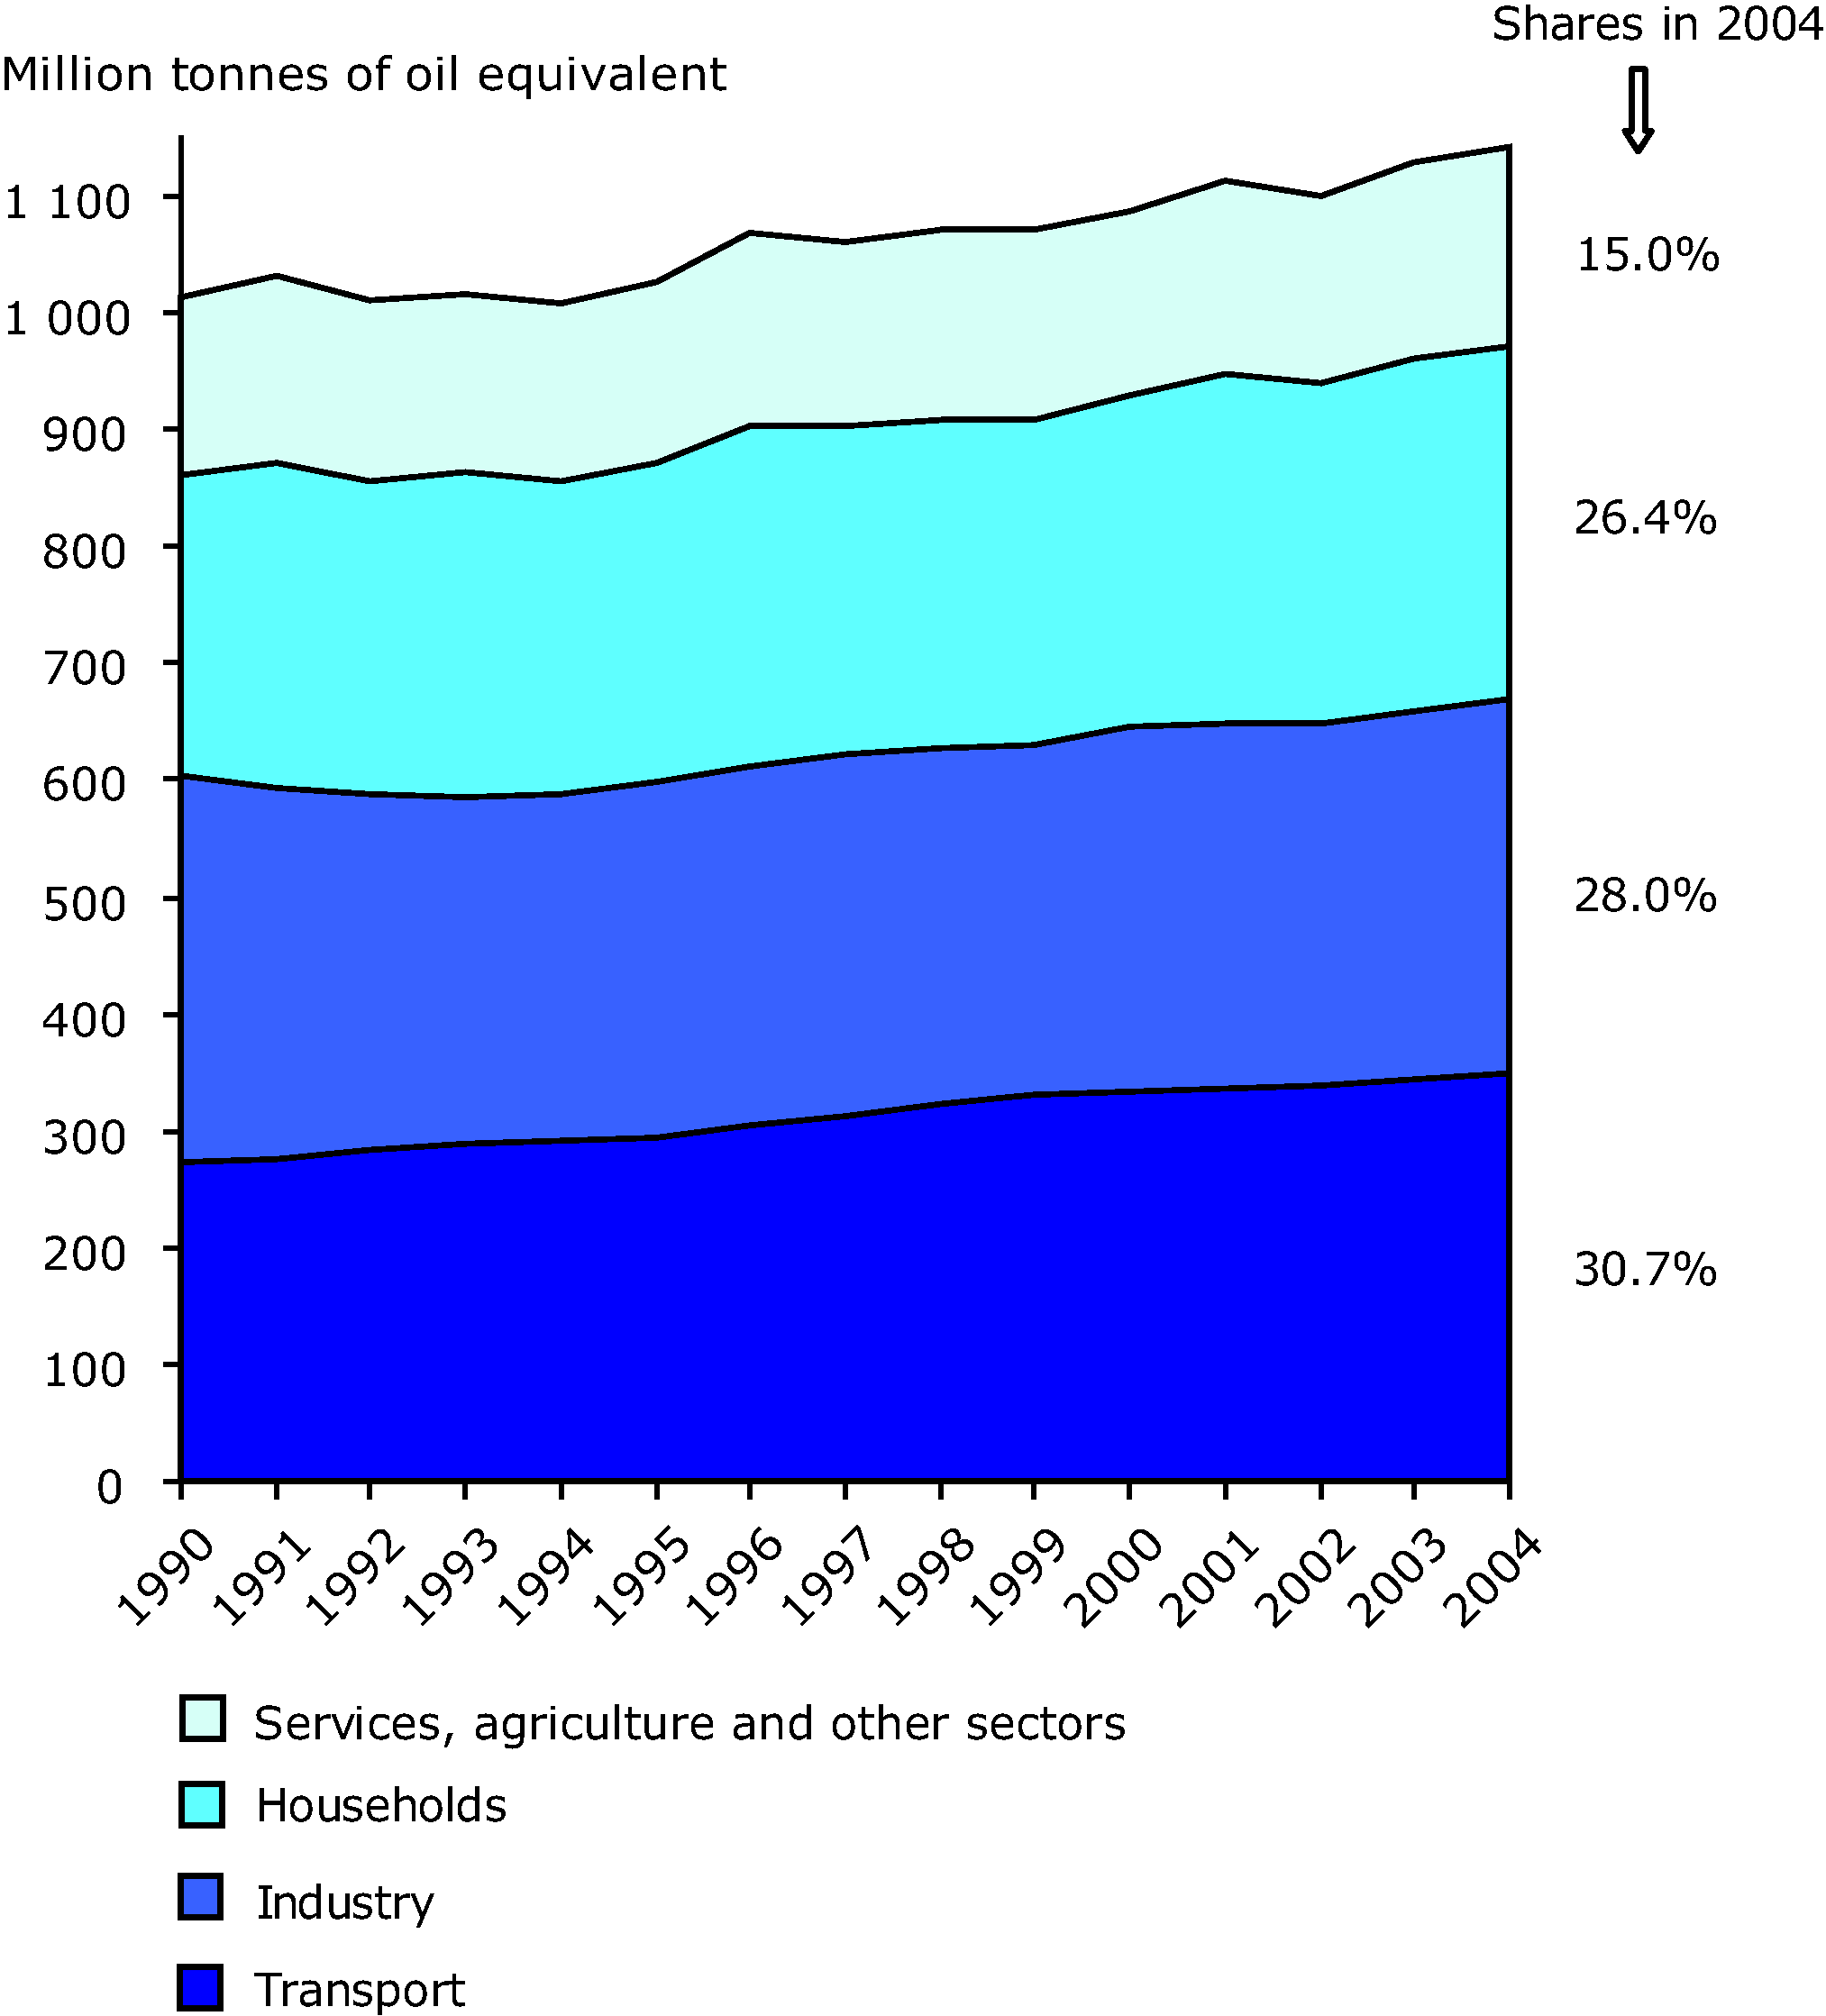 Final energy consumption by sector in the EU-25, 1990-2004